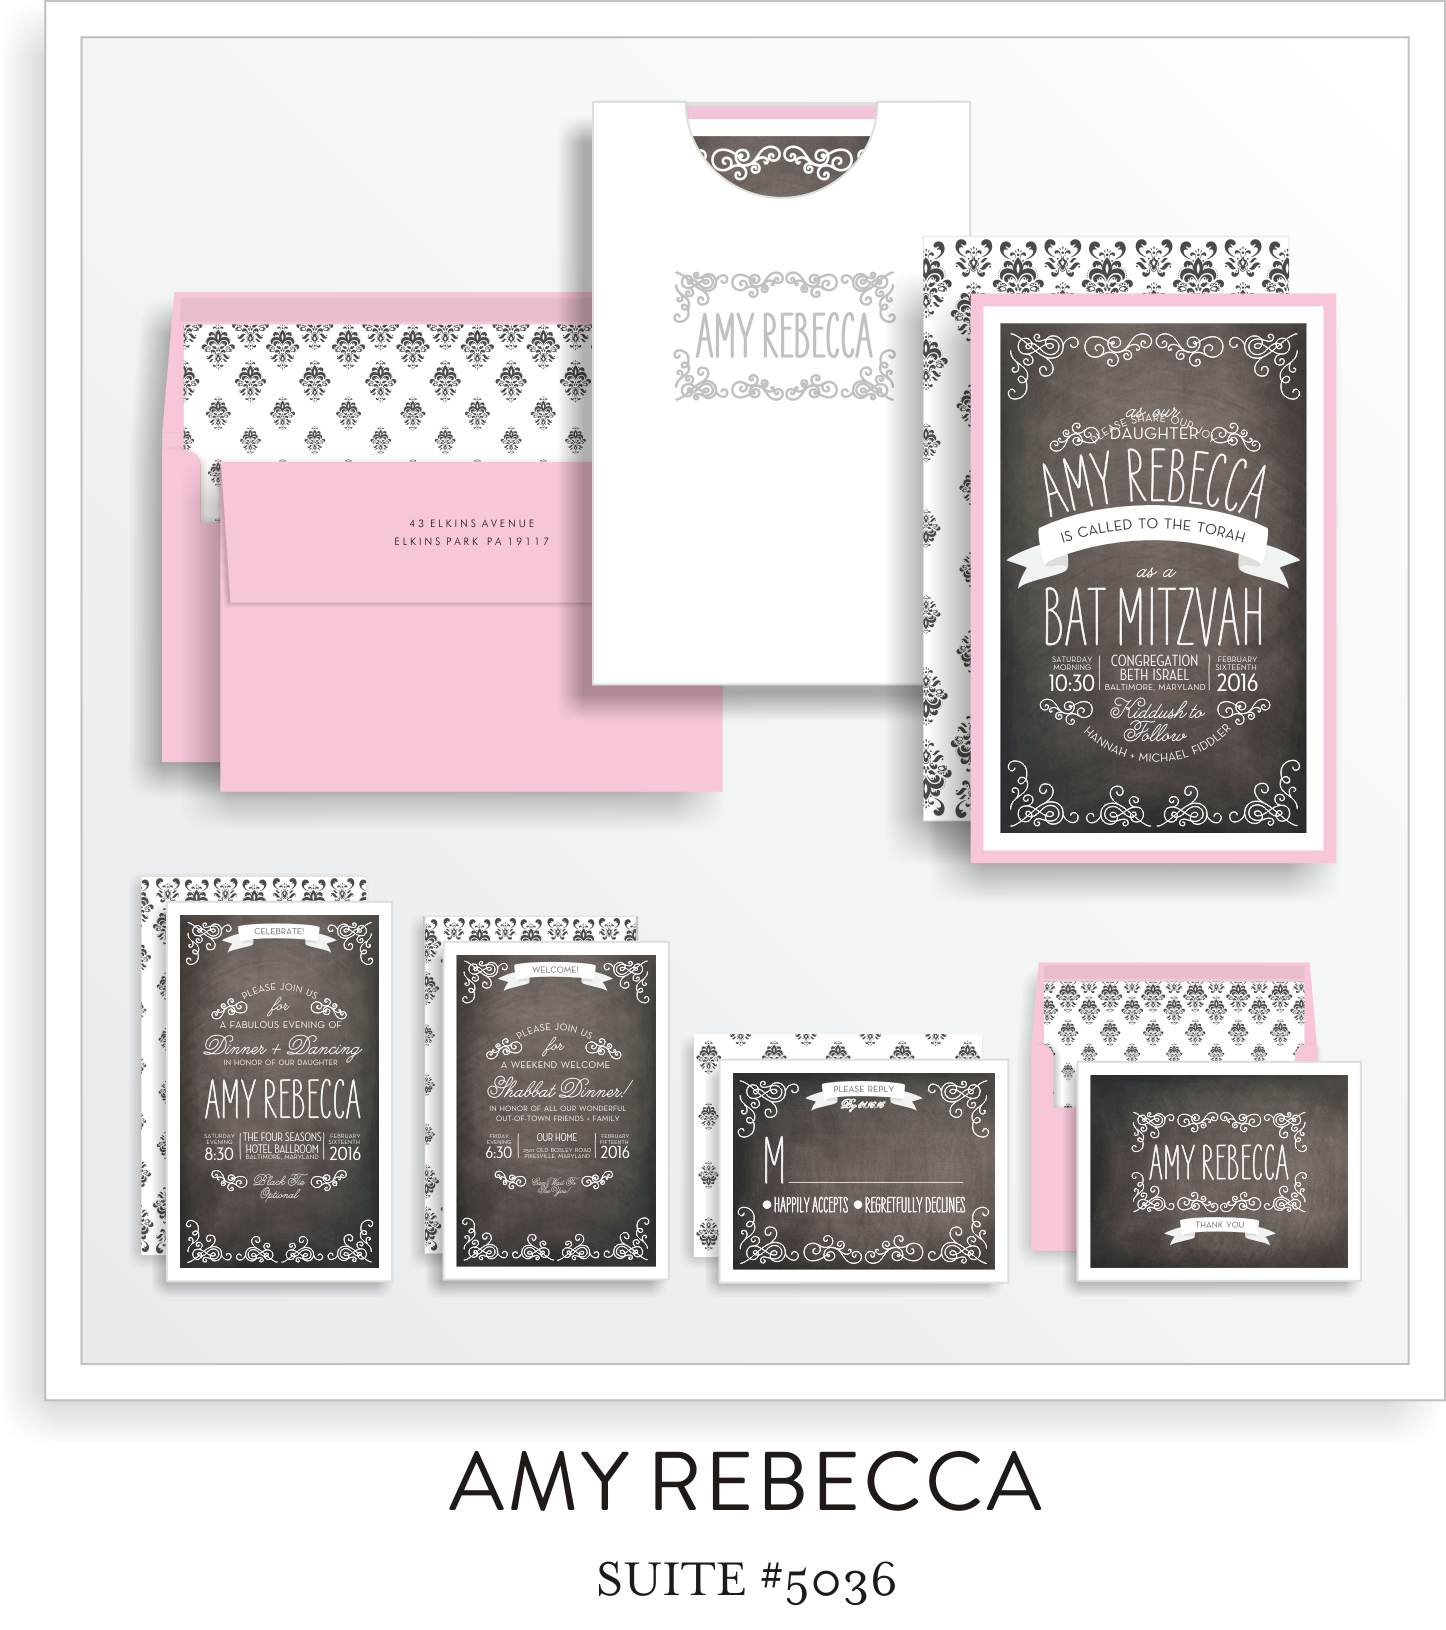 Copy of bat mitzvah invitations 5036